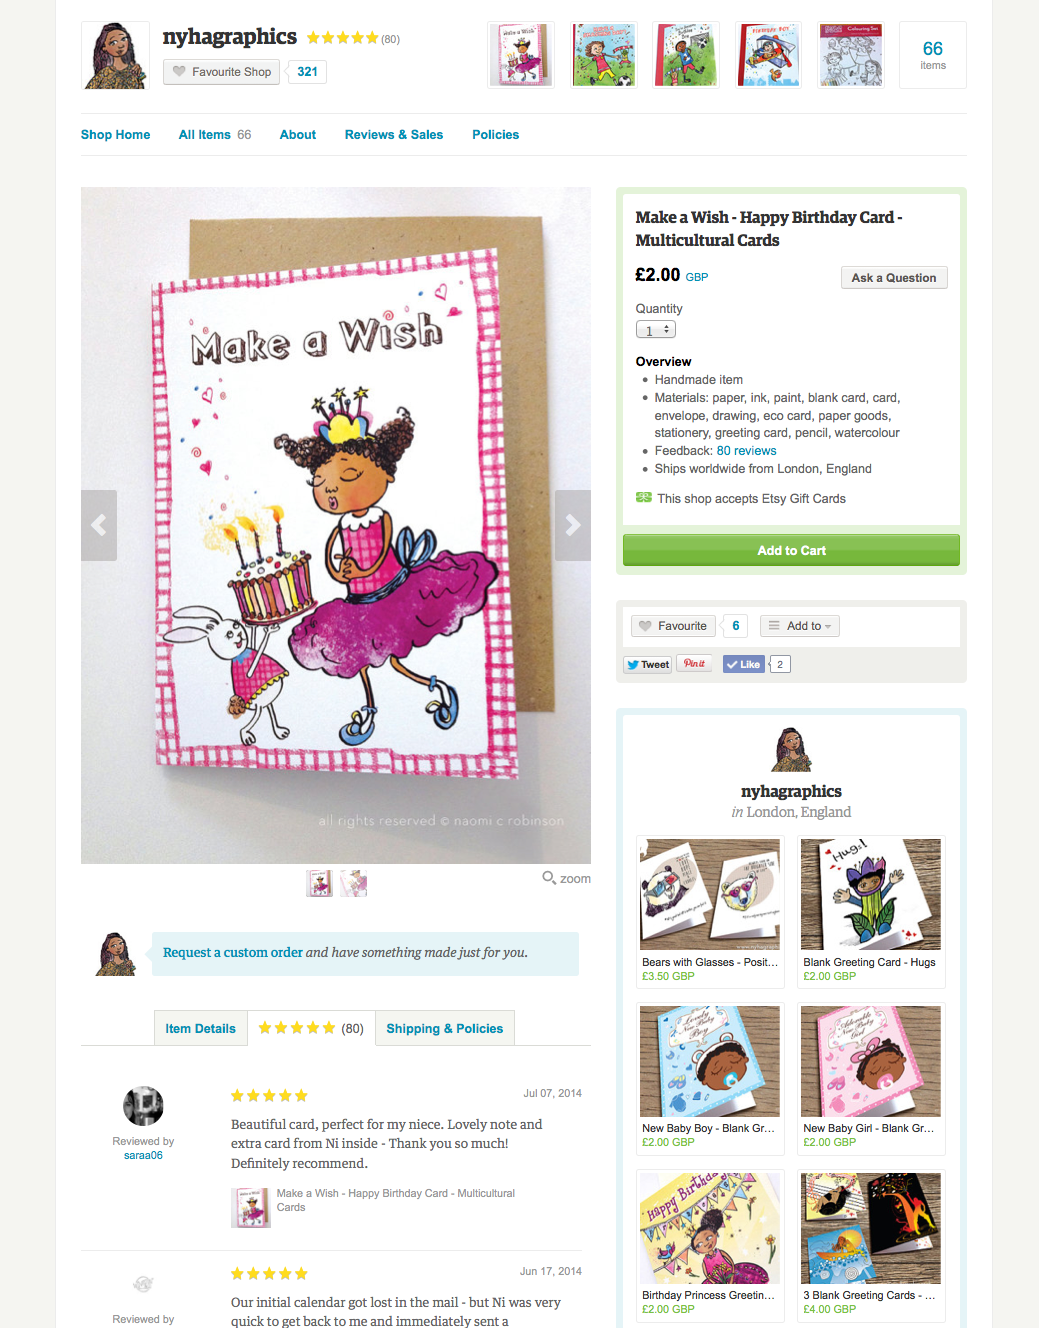 https://www.etsy.com/uk/listing/192649059/make-a-wish-happy-birthday-card?ref=listing-5